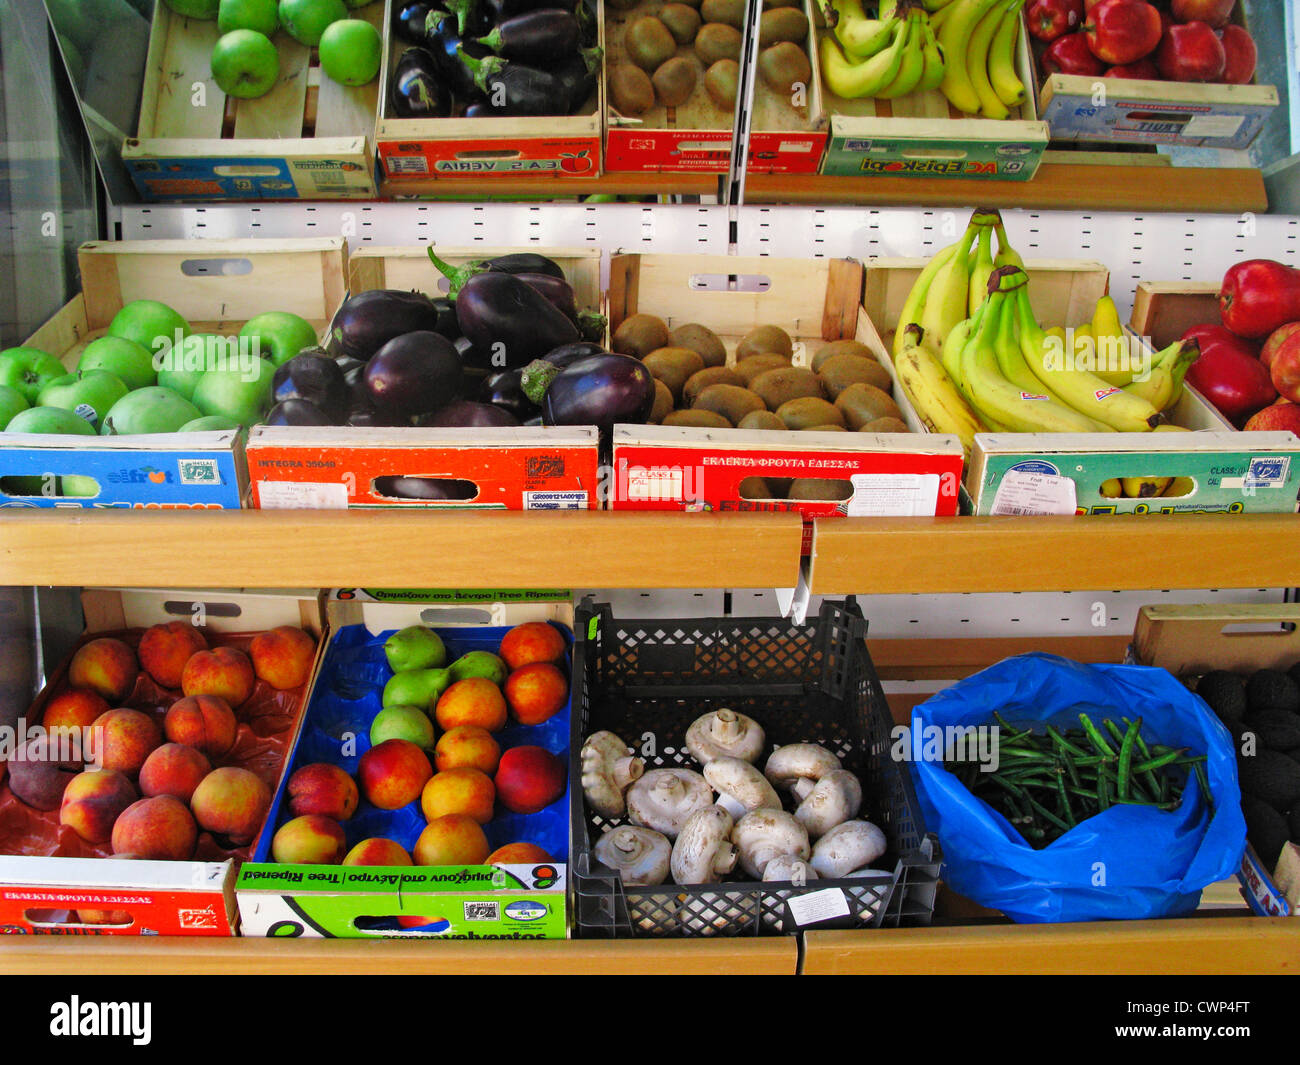 Fruit and Vegetable Display at a Greengrocers, Crete, Greece - Stock Image